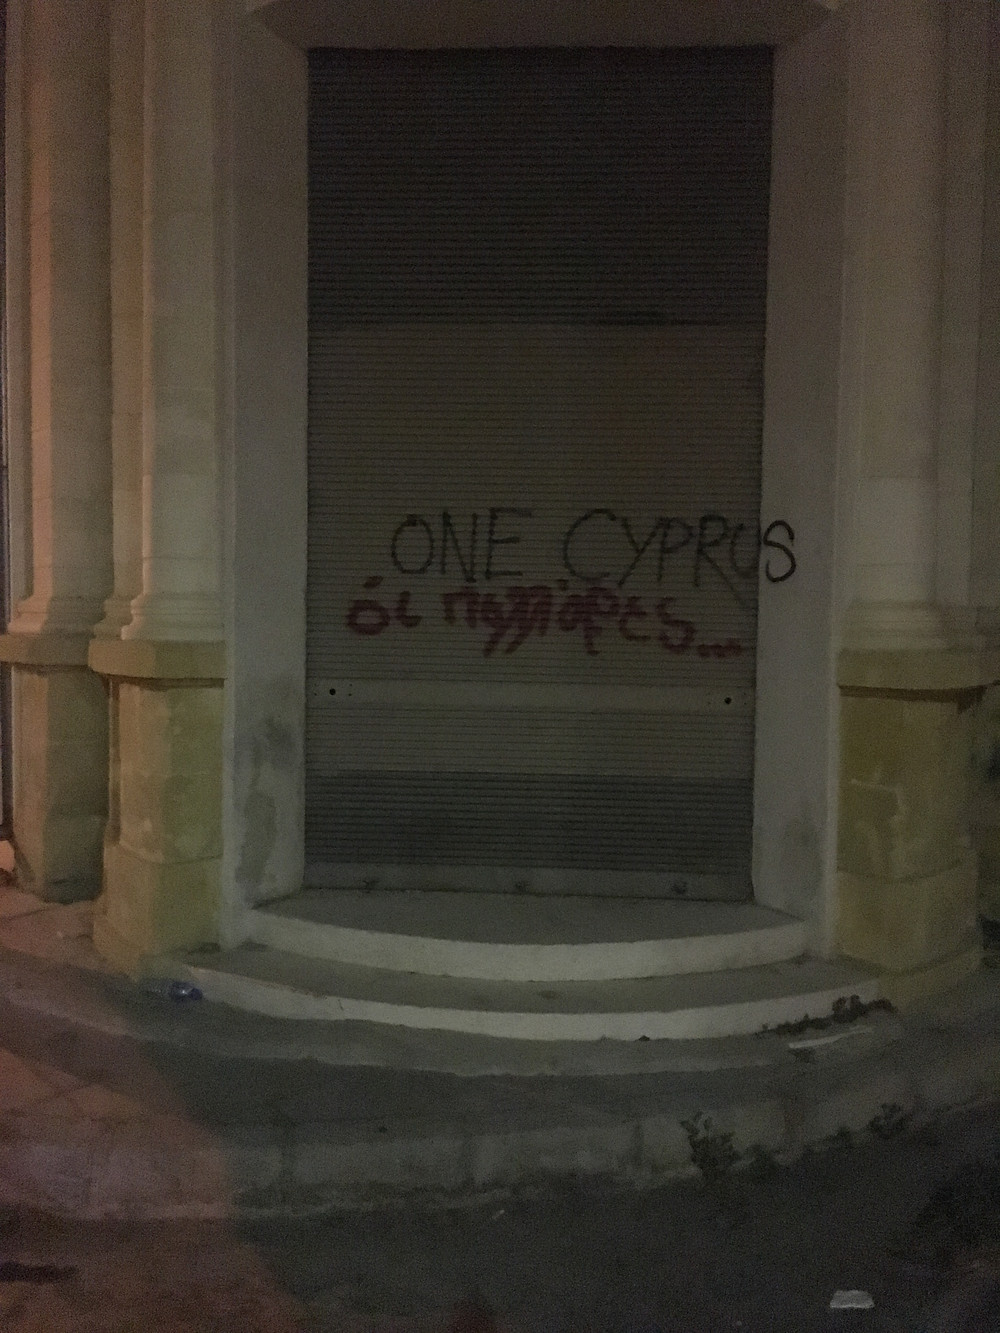 Graffiti in Nicosia, near the UN patrolled buffer zone separating the Republic of Cyprus from Turkish-occupied Cyprus